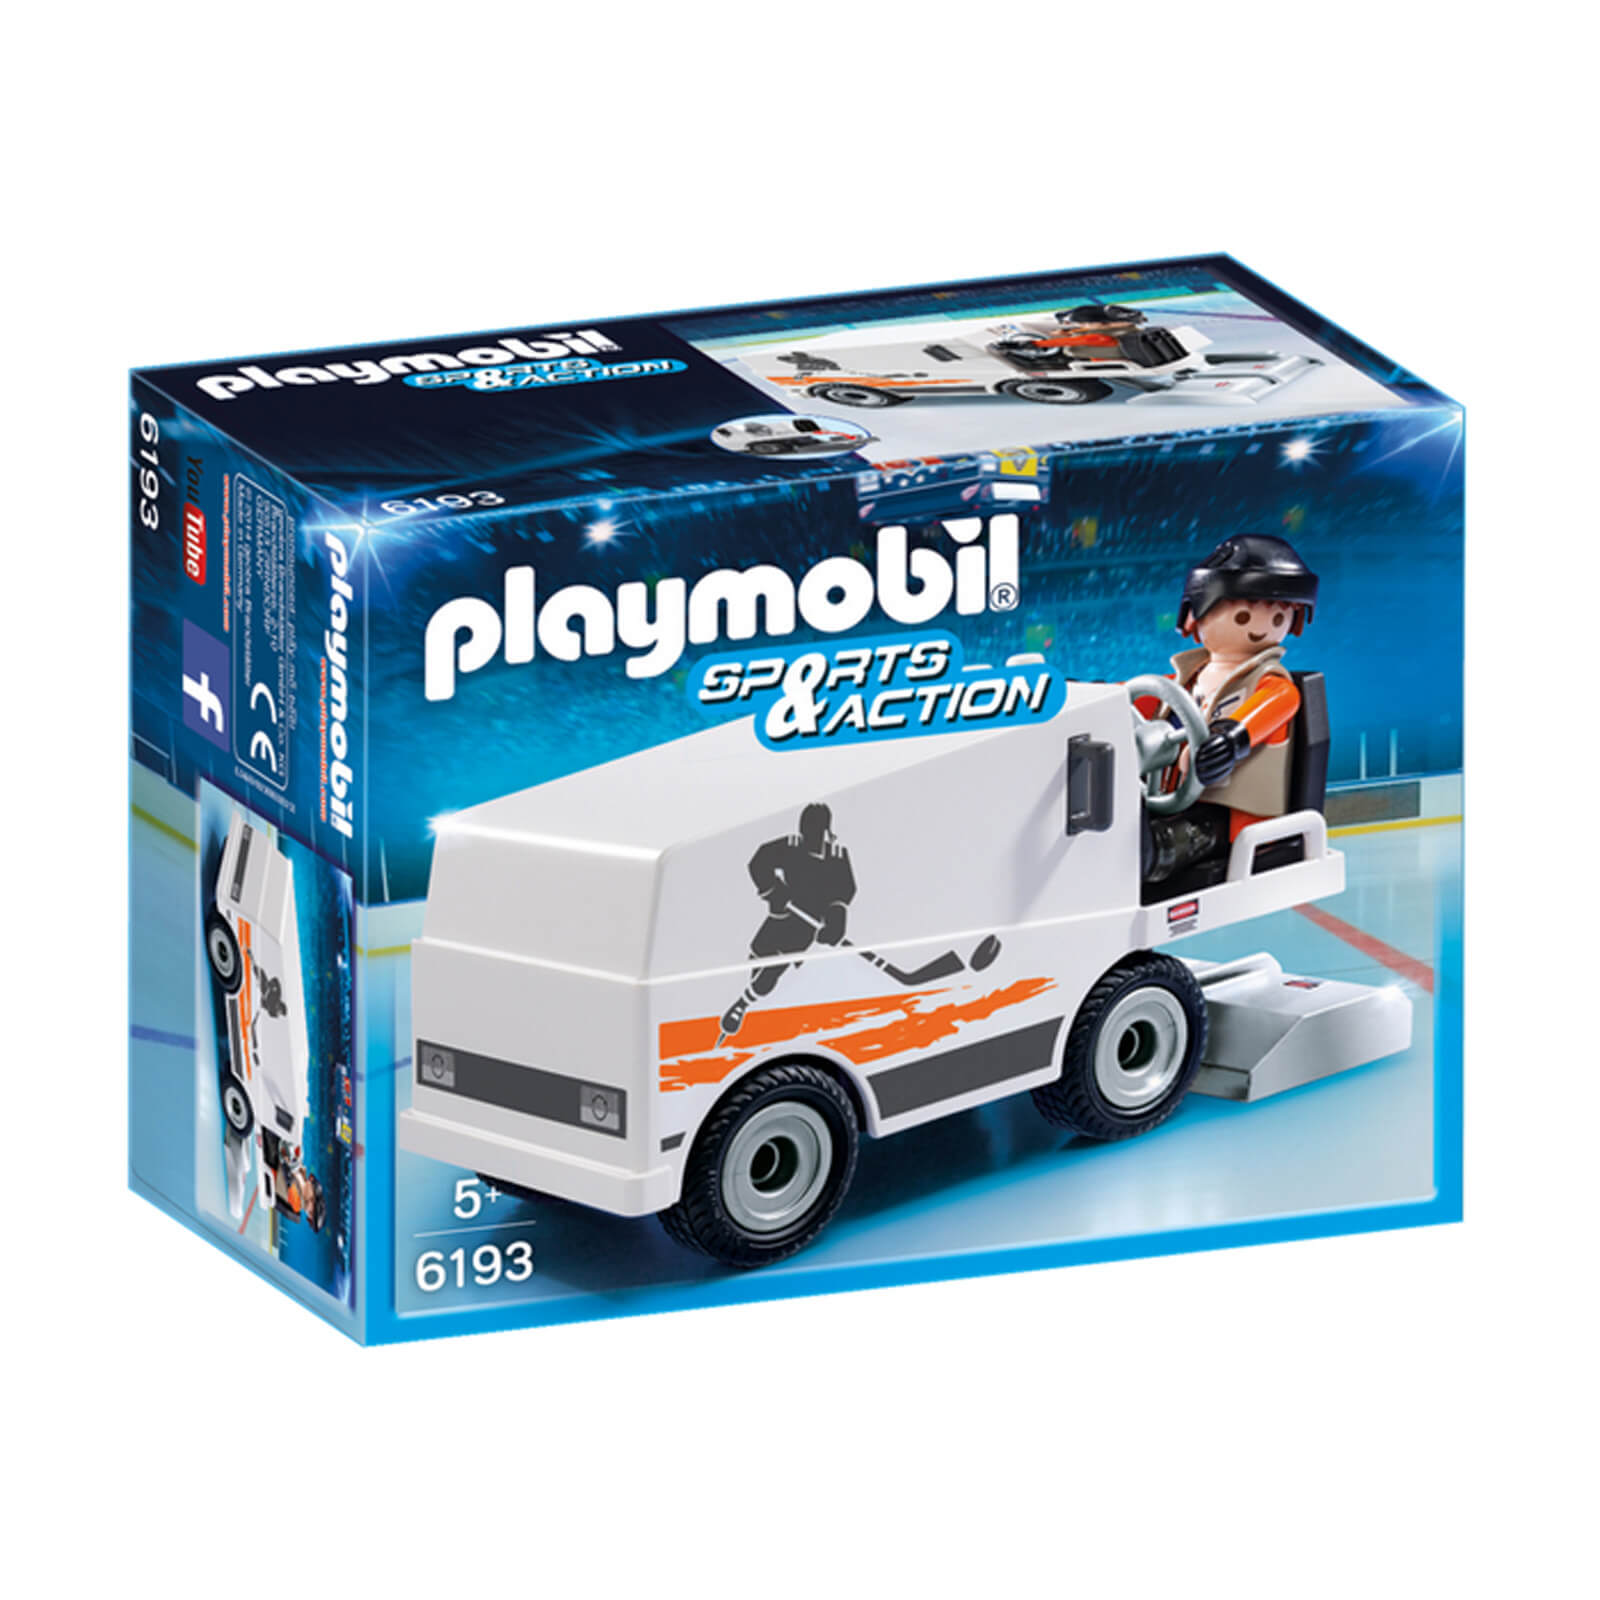 Playmobil Sports & Action Ice Resurfacer (6193)